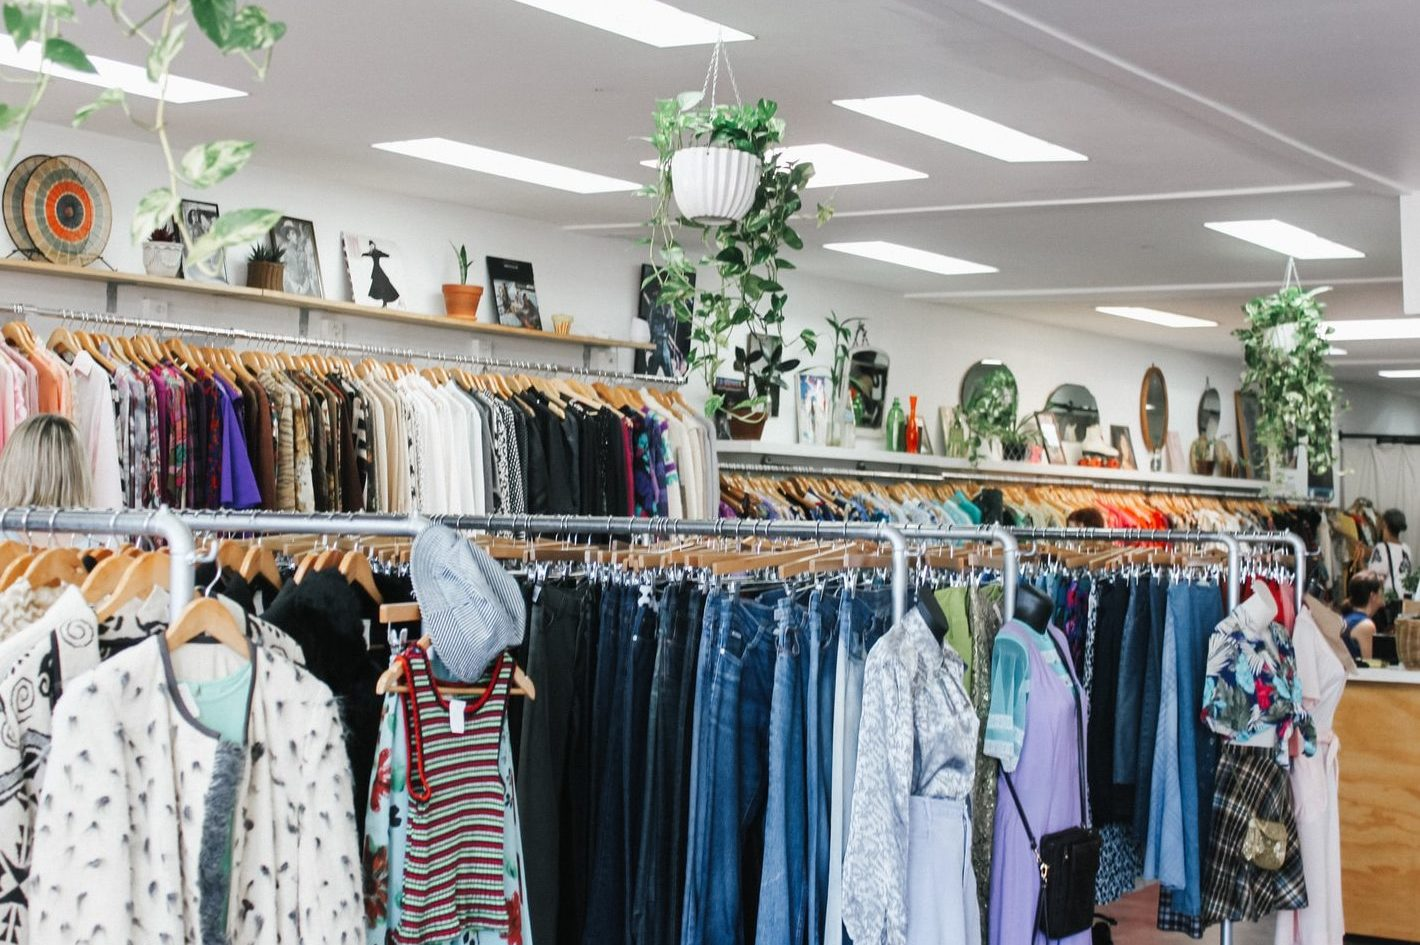 assorted-color clothes hanged inside department store with lights turned on